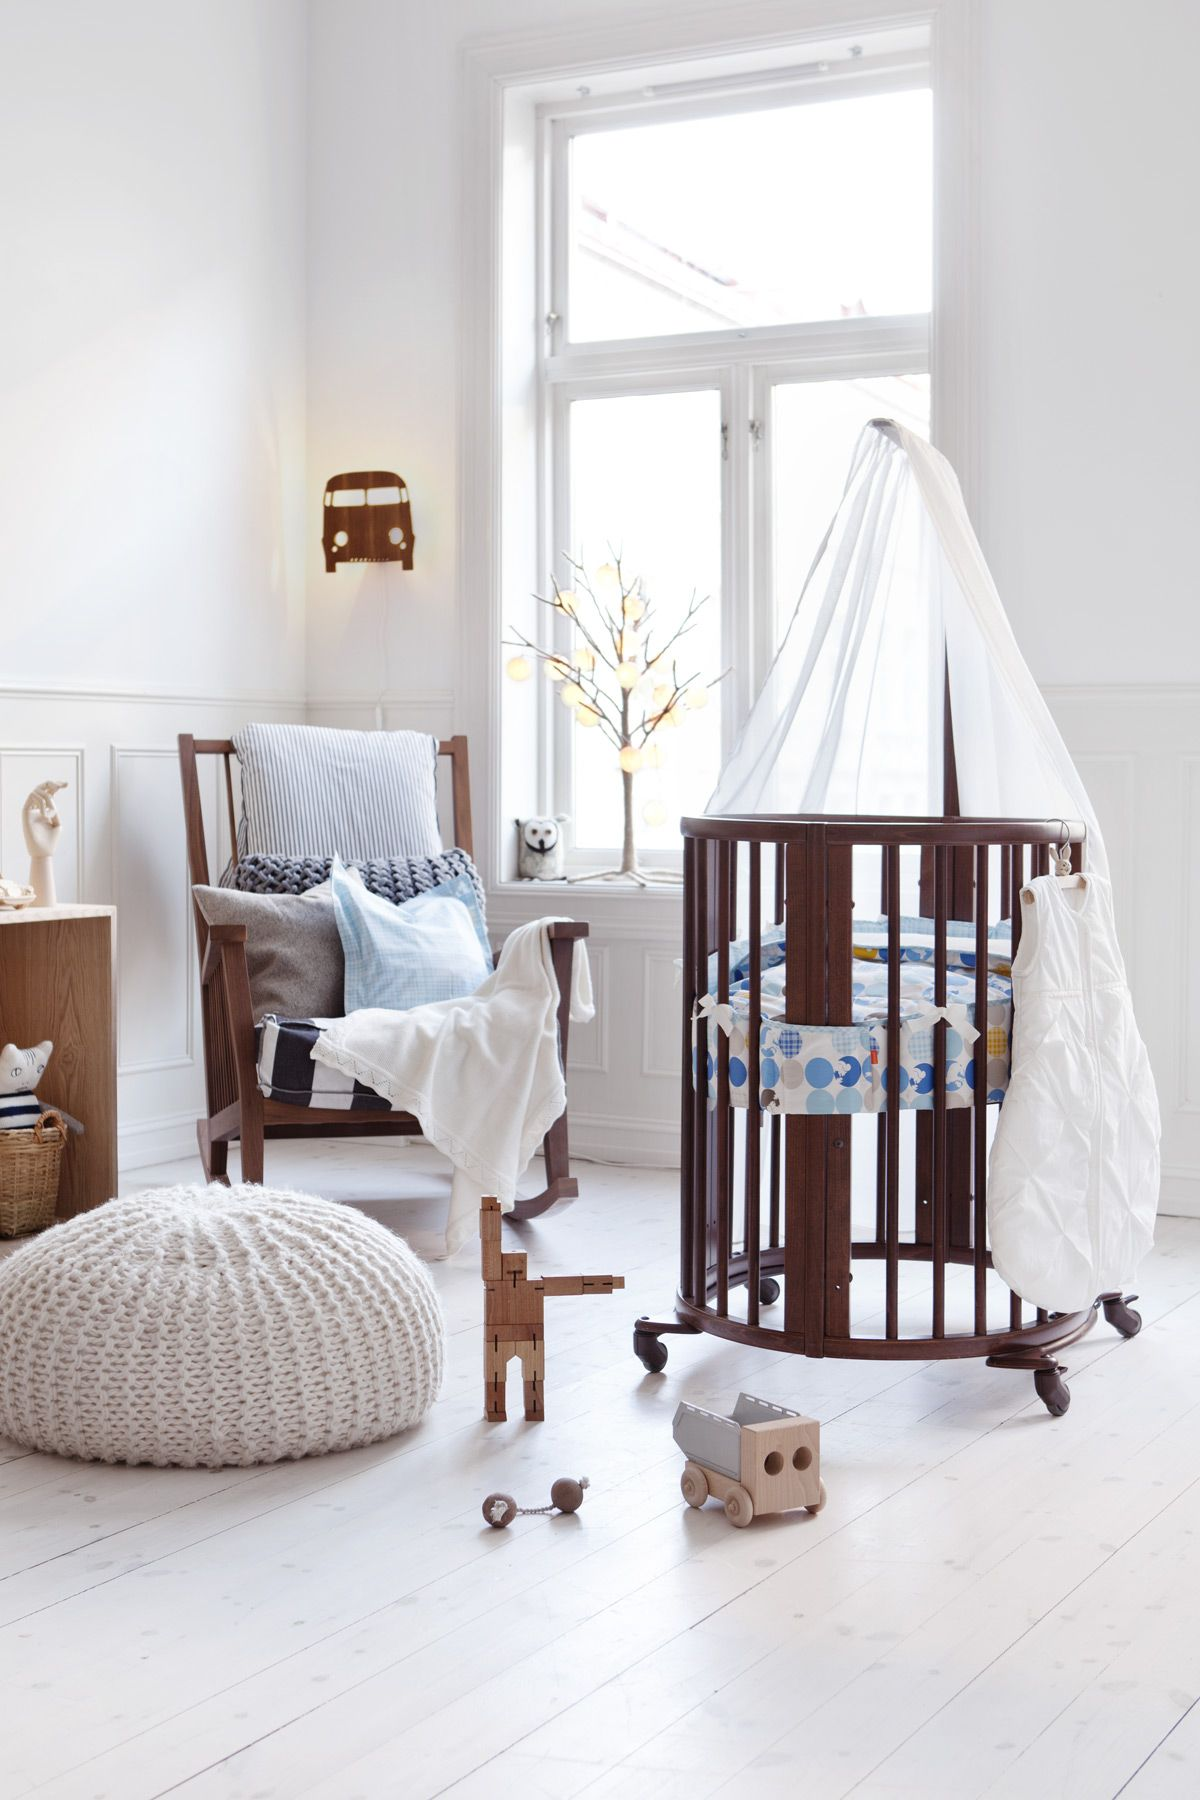 Stokke Sessel Peel Walnut Stokke Sleepi Mini Crib Converts To Larger Size As Baby